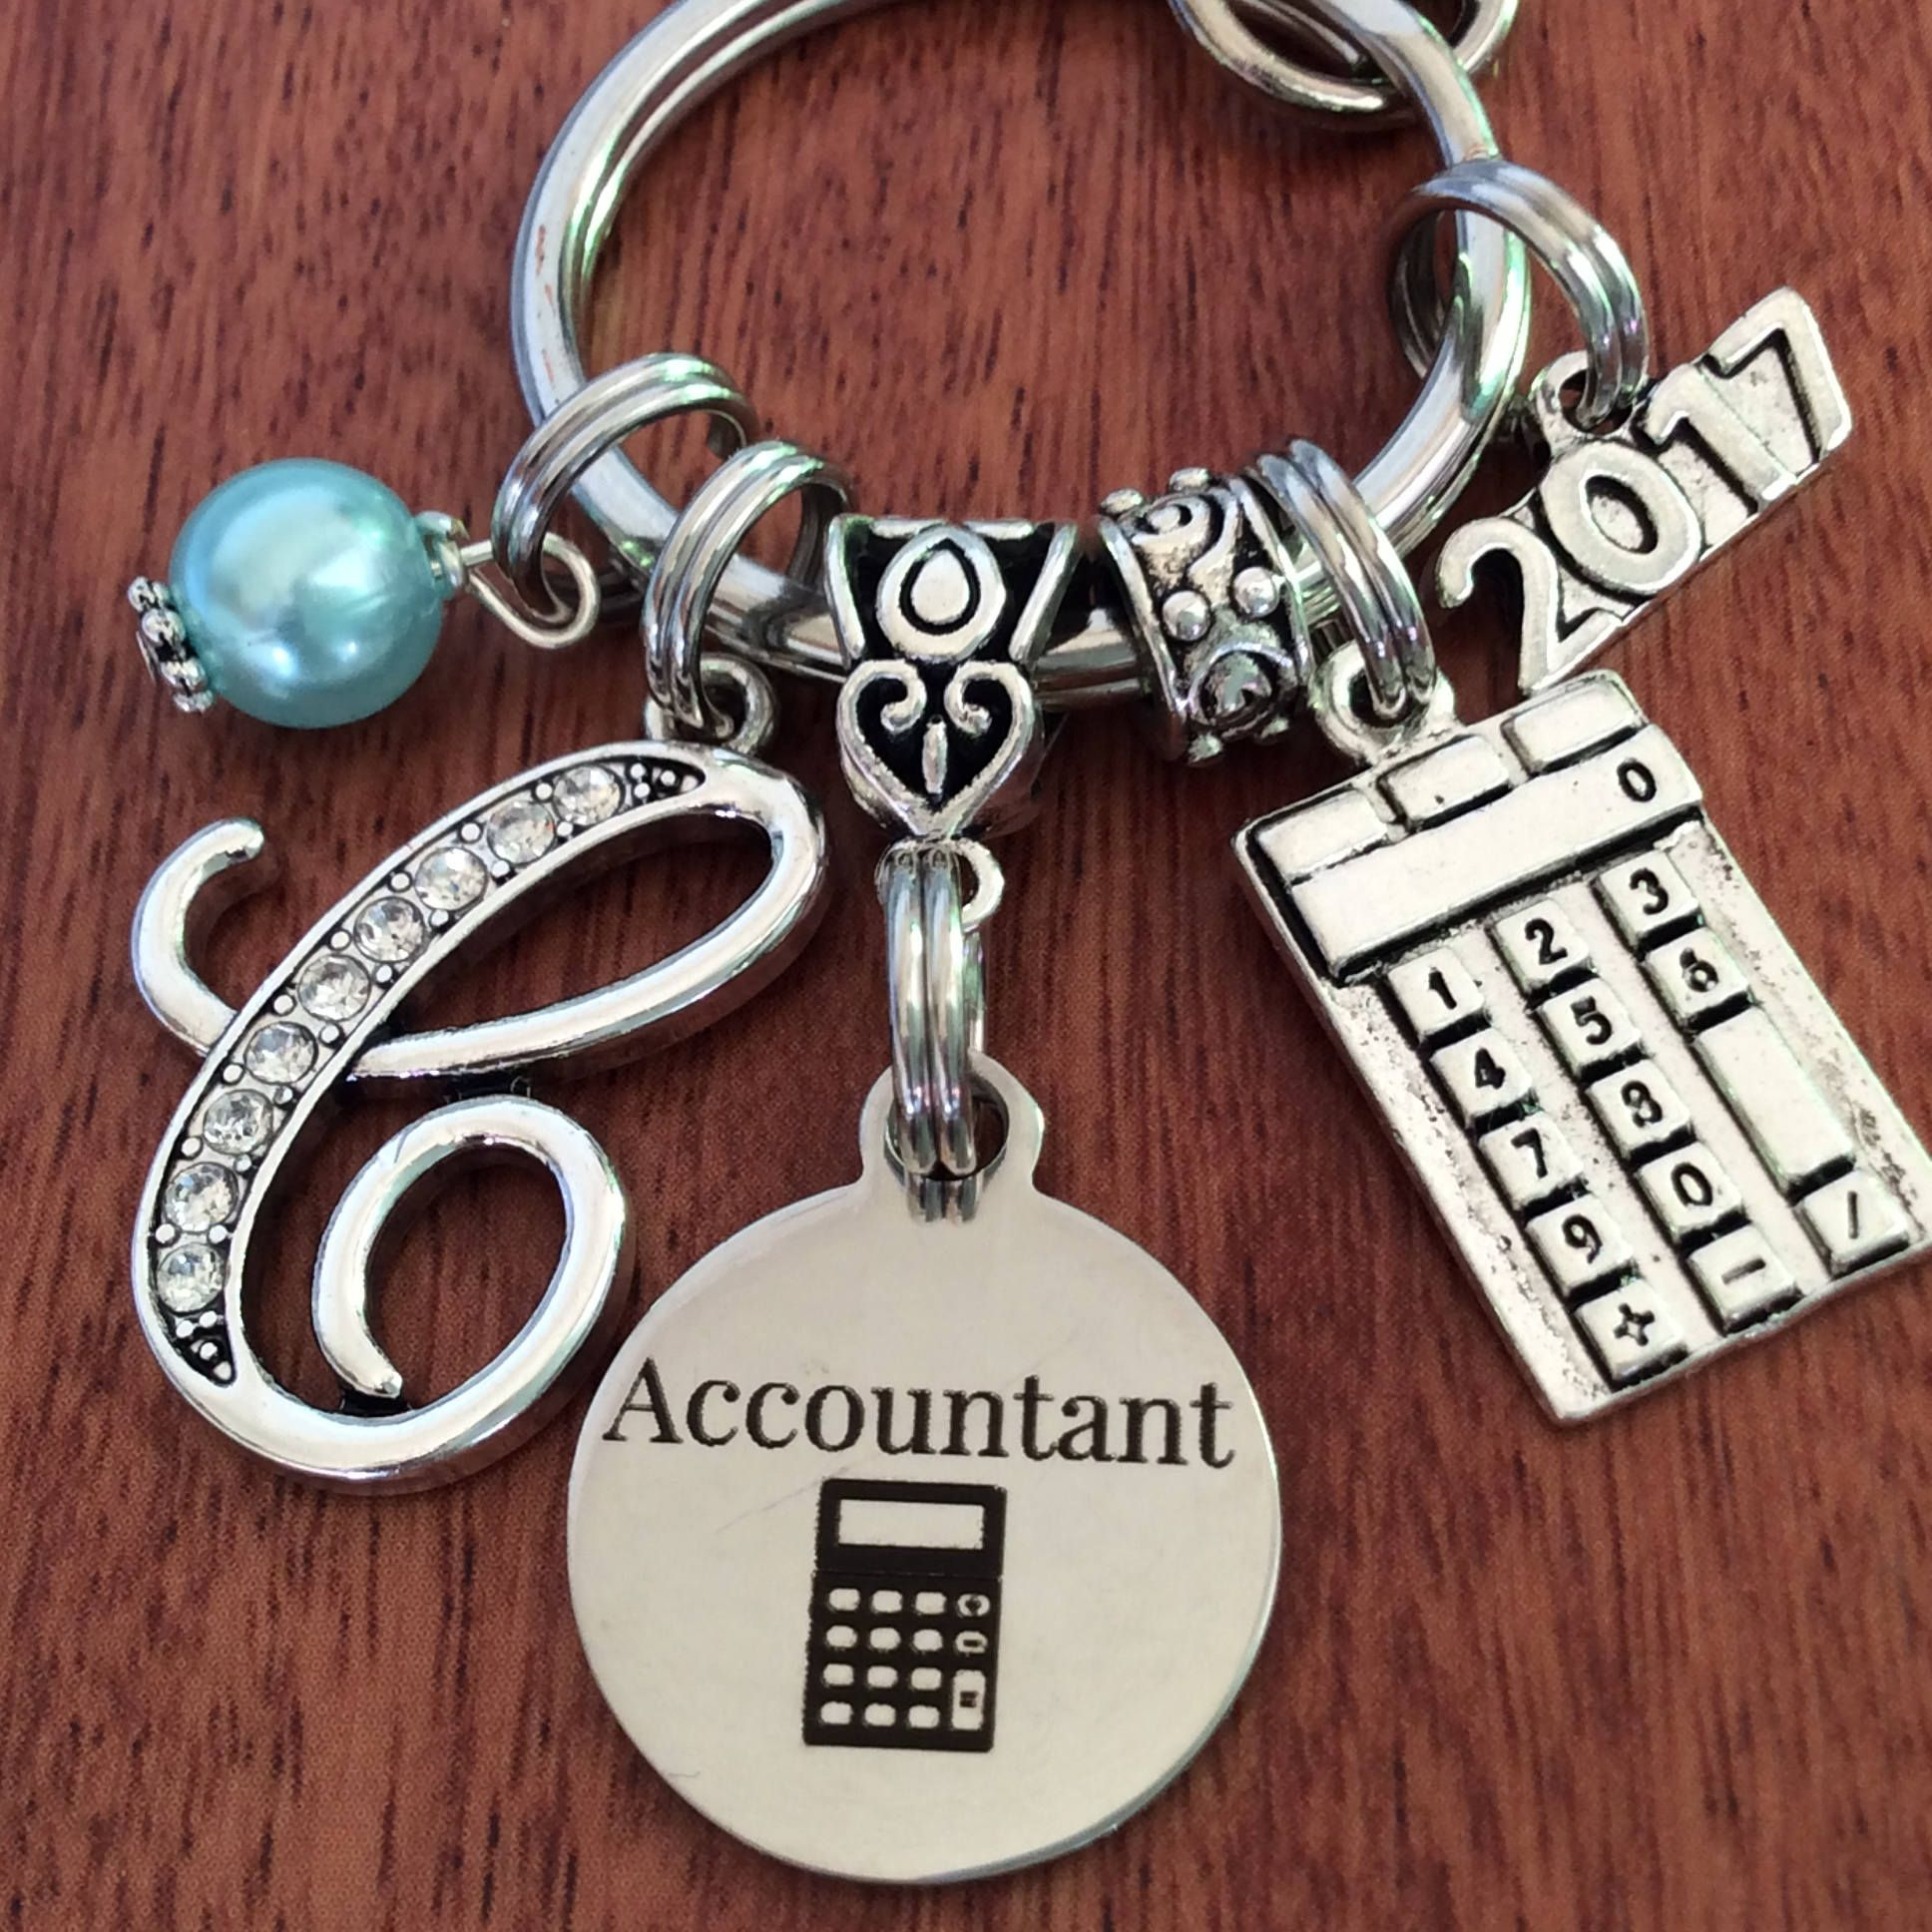 Accountant gift accountant keychain gifts for accountant